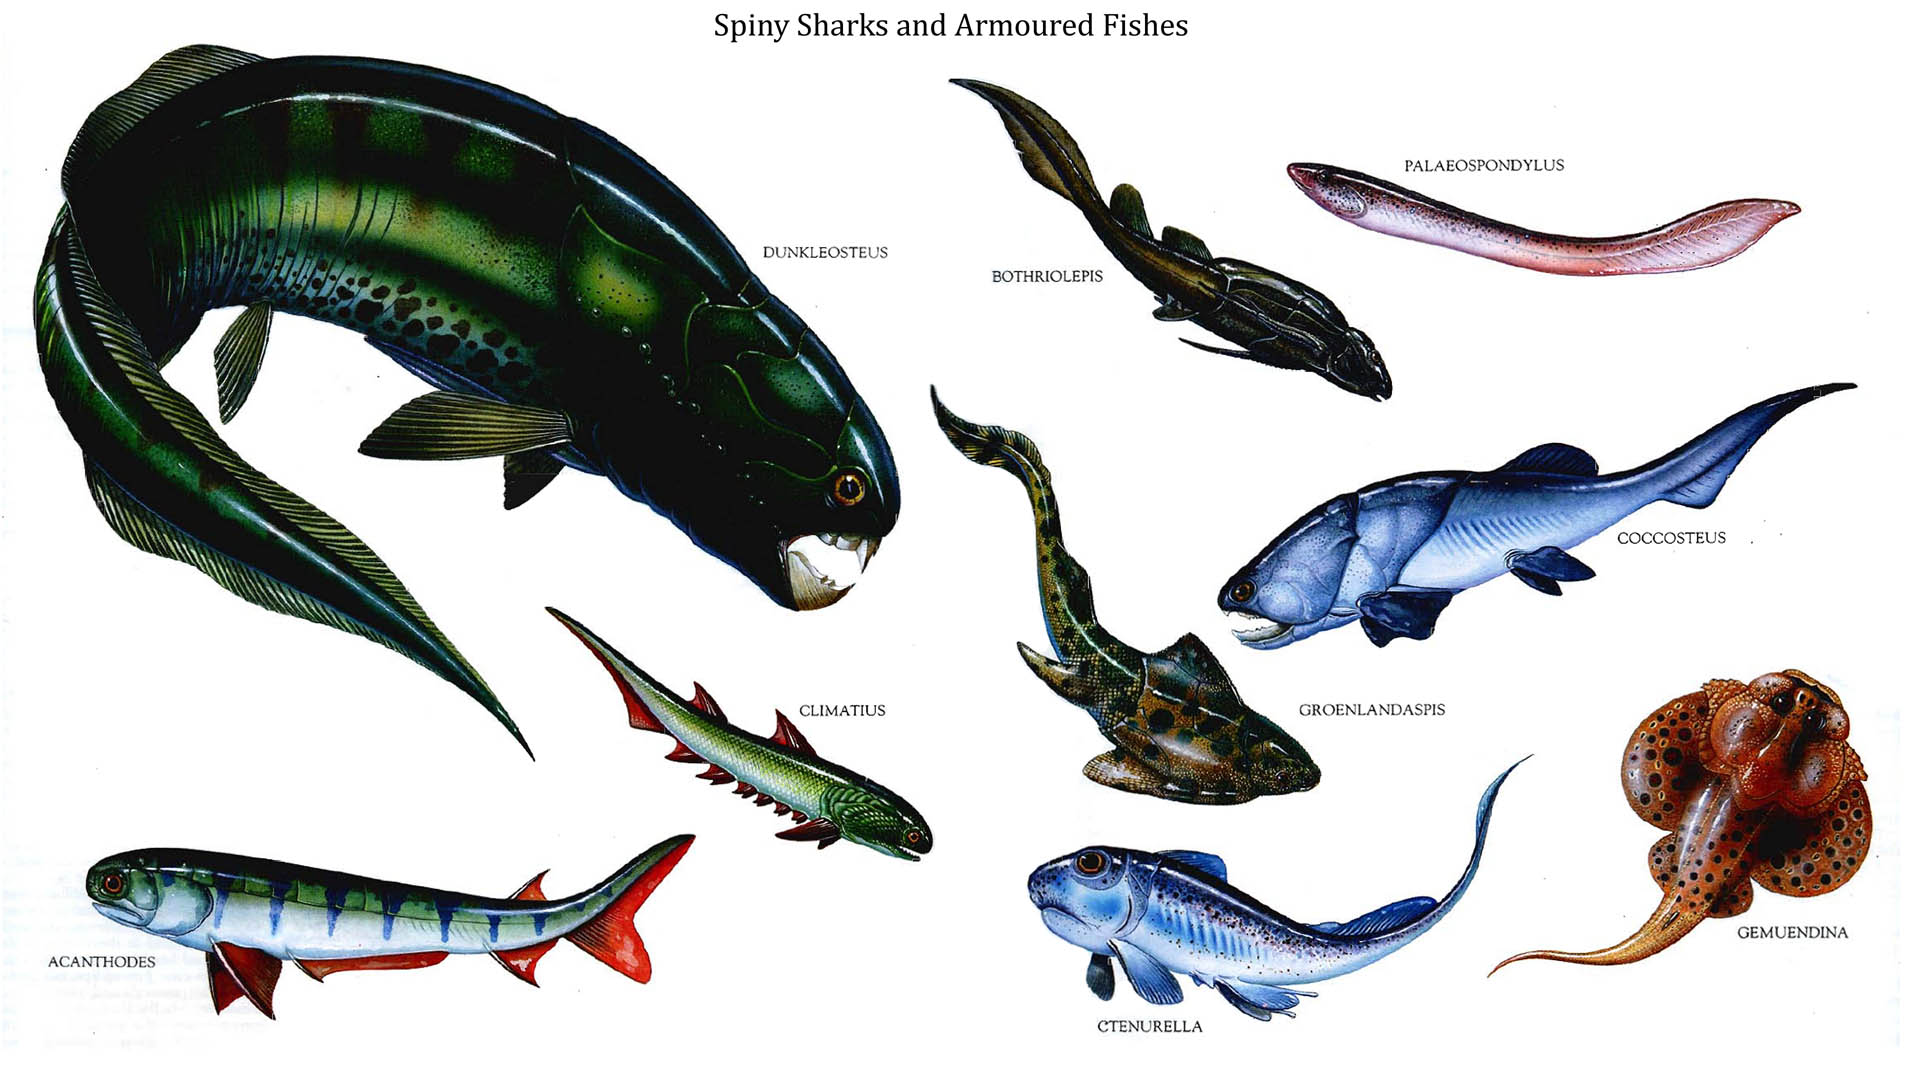 Water Based Spiny Sharks And Armoured Fishes